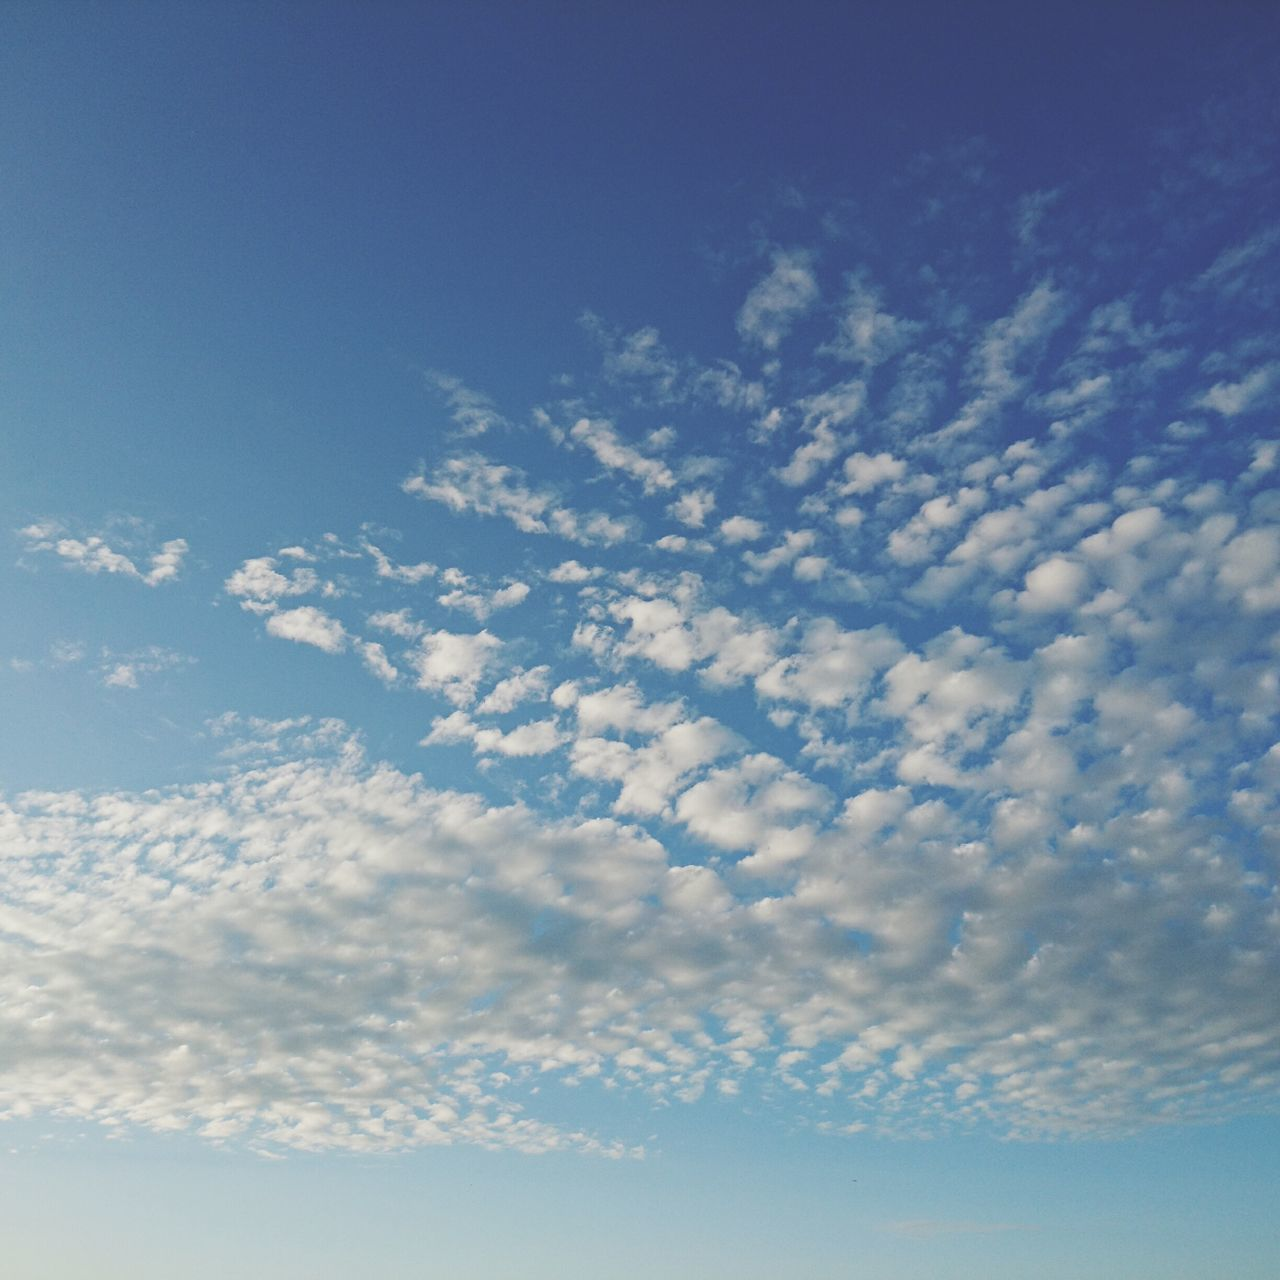 nature, sky, beauty in nature, blue, scenics, backgrounds, no people, sky only, tranquility, cloud - sky, day, outdoors